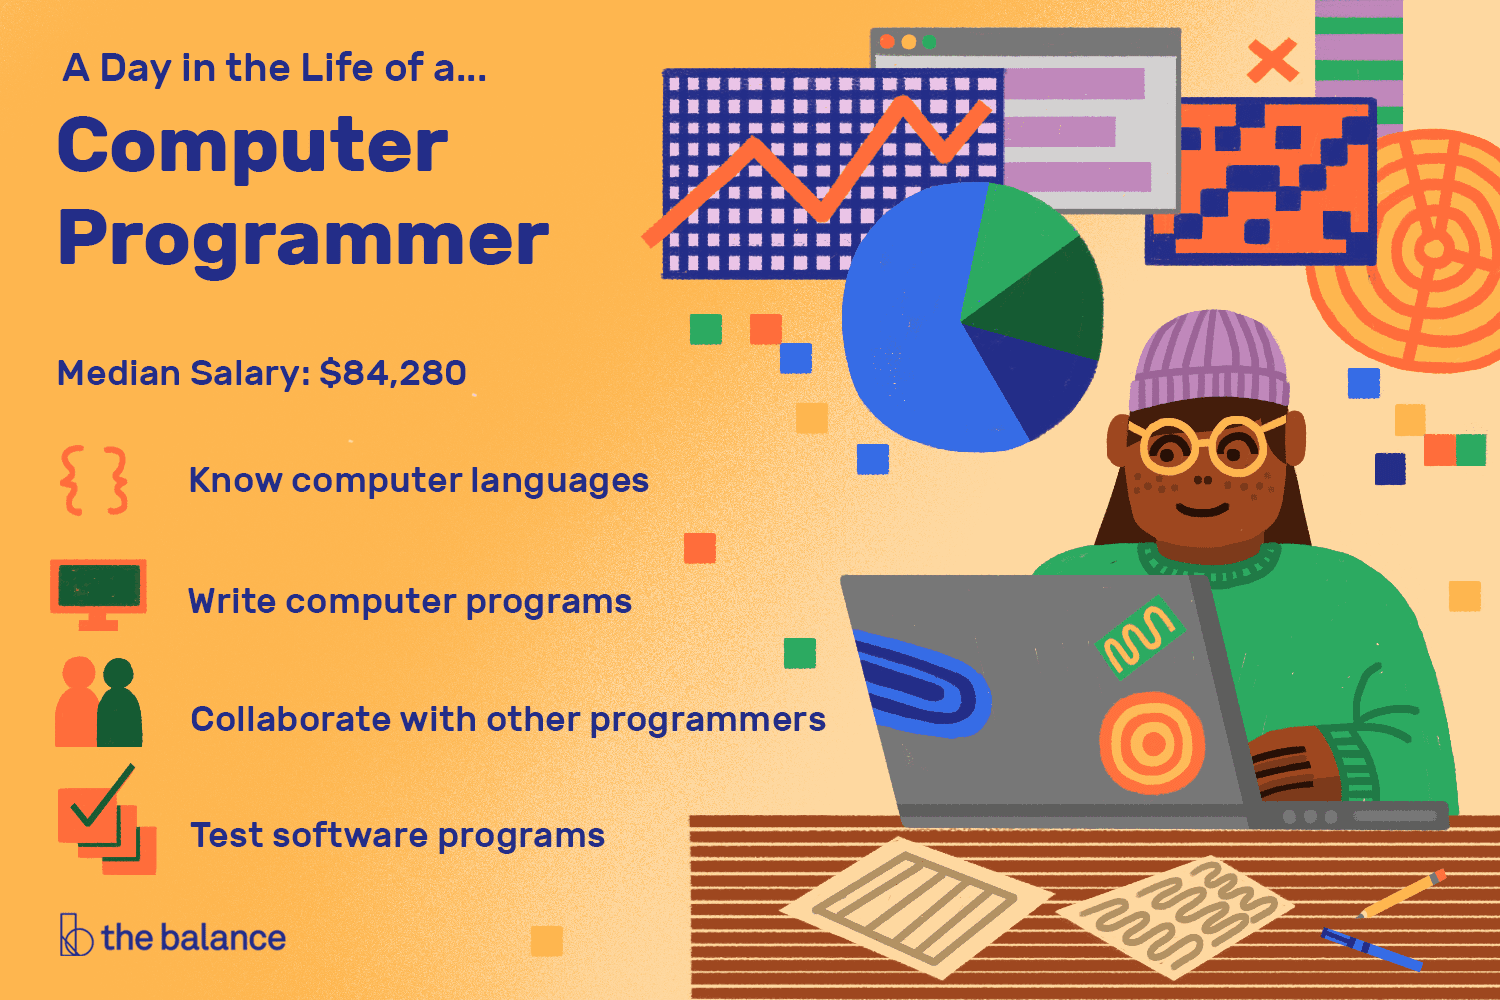 Computer Programmer Job Description Salary Skills Amp More